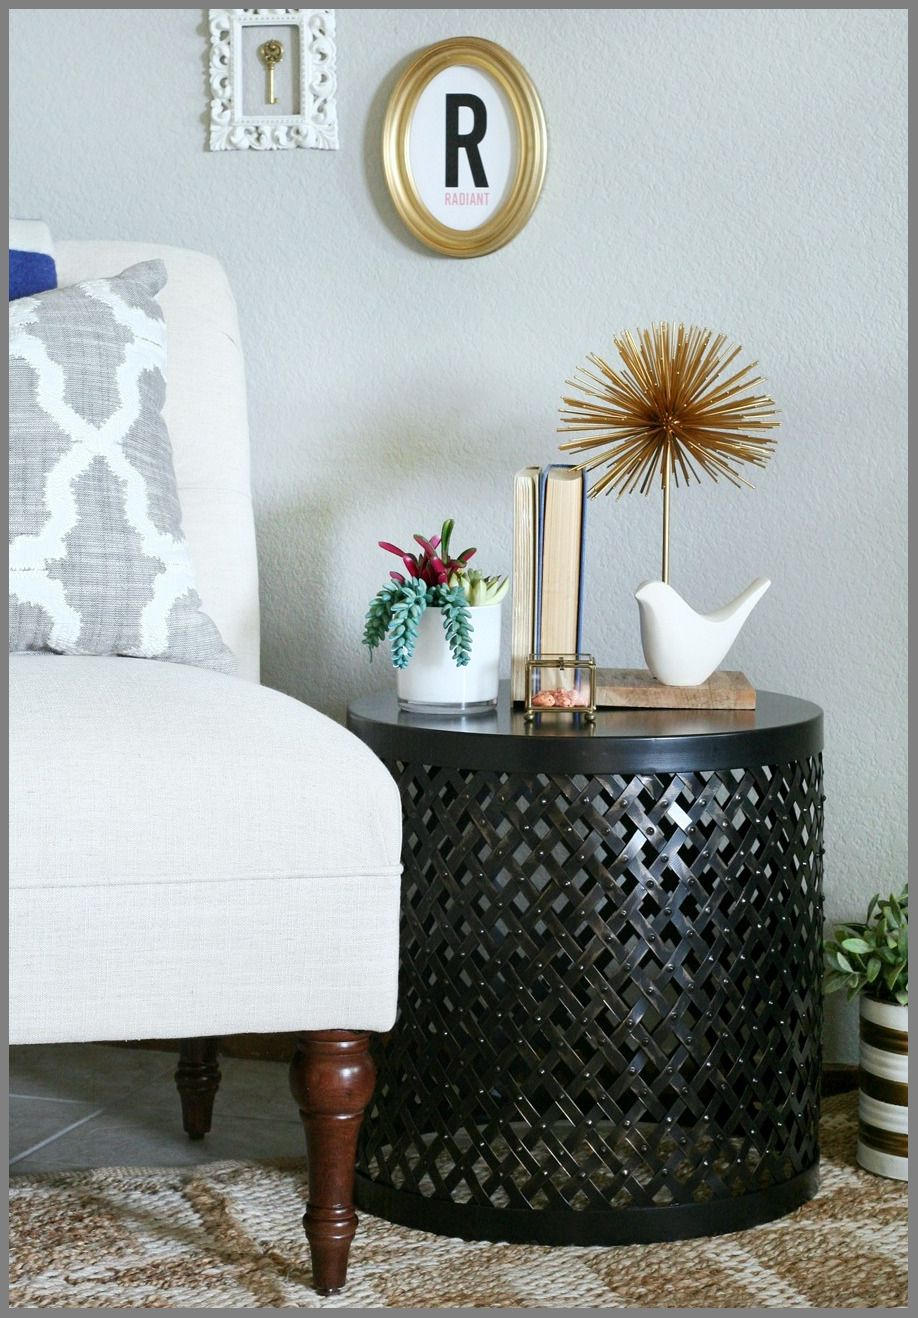 round side table decor dreamscroock amazing decorations cool end decors with unique design black lamp floor whalen bookcase kmart kitchen curtains tall mirrored dresser antigua